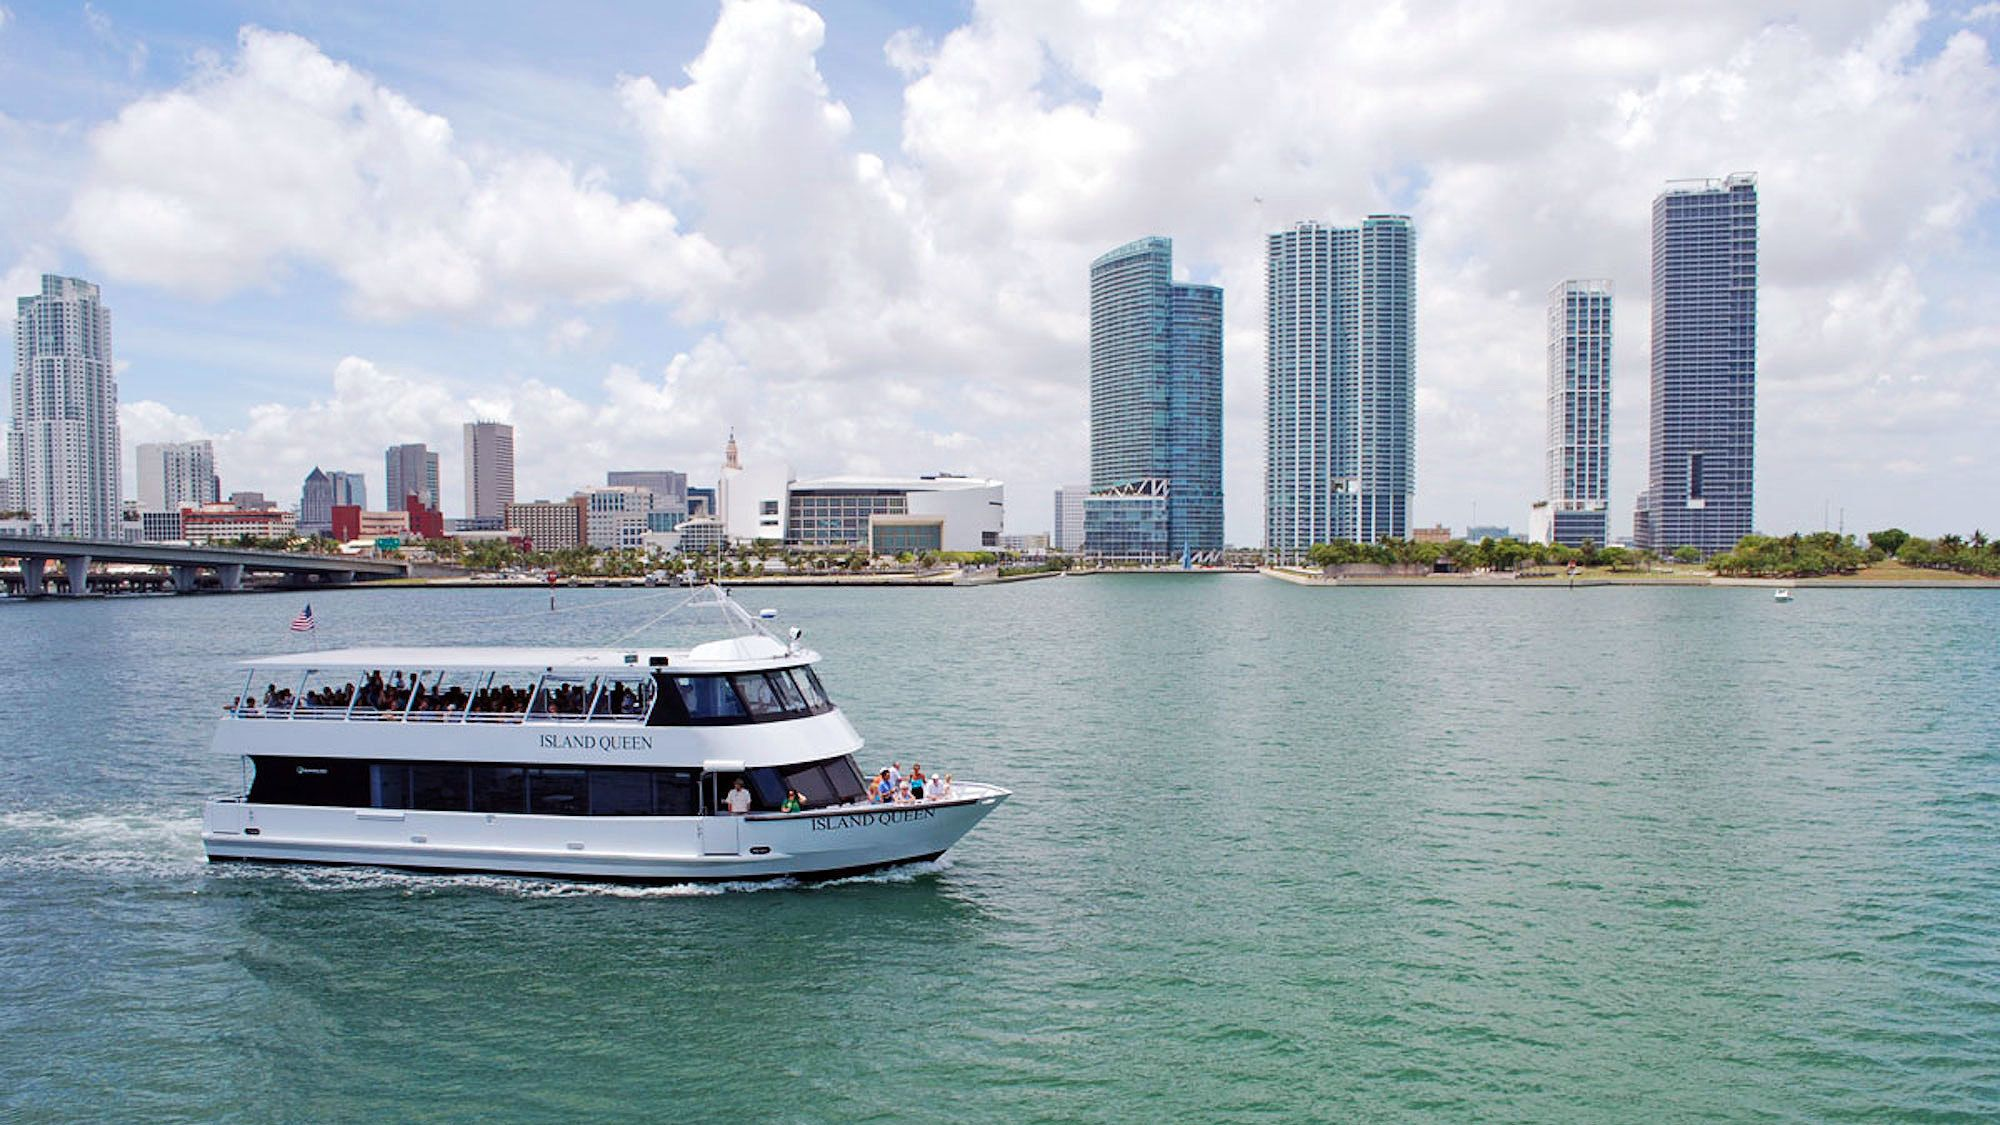 Miami Day Trip from Orlando with Biscayne Bay Cruise